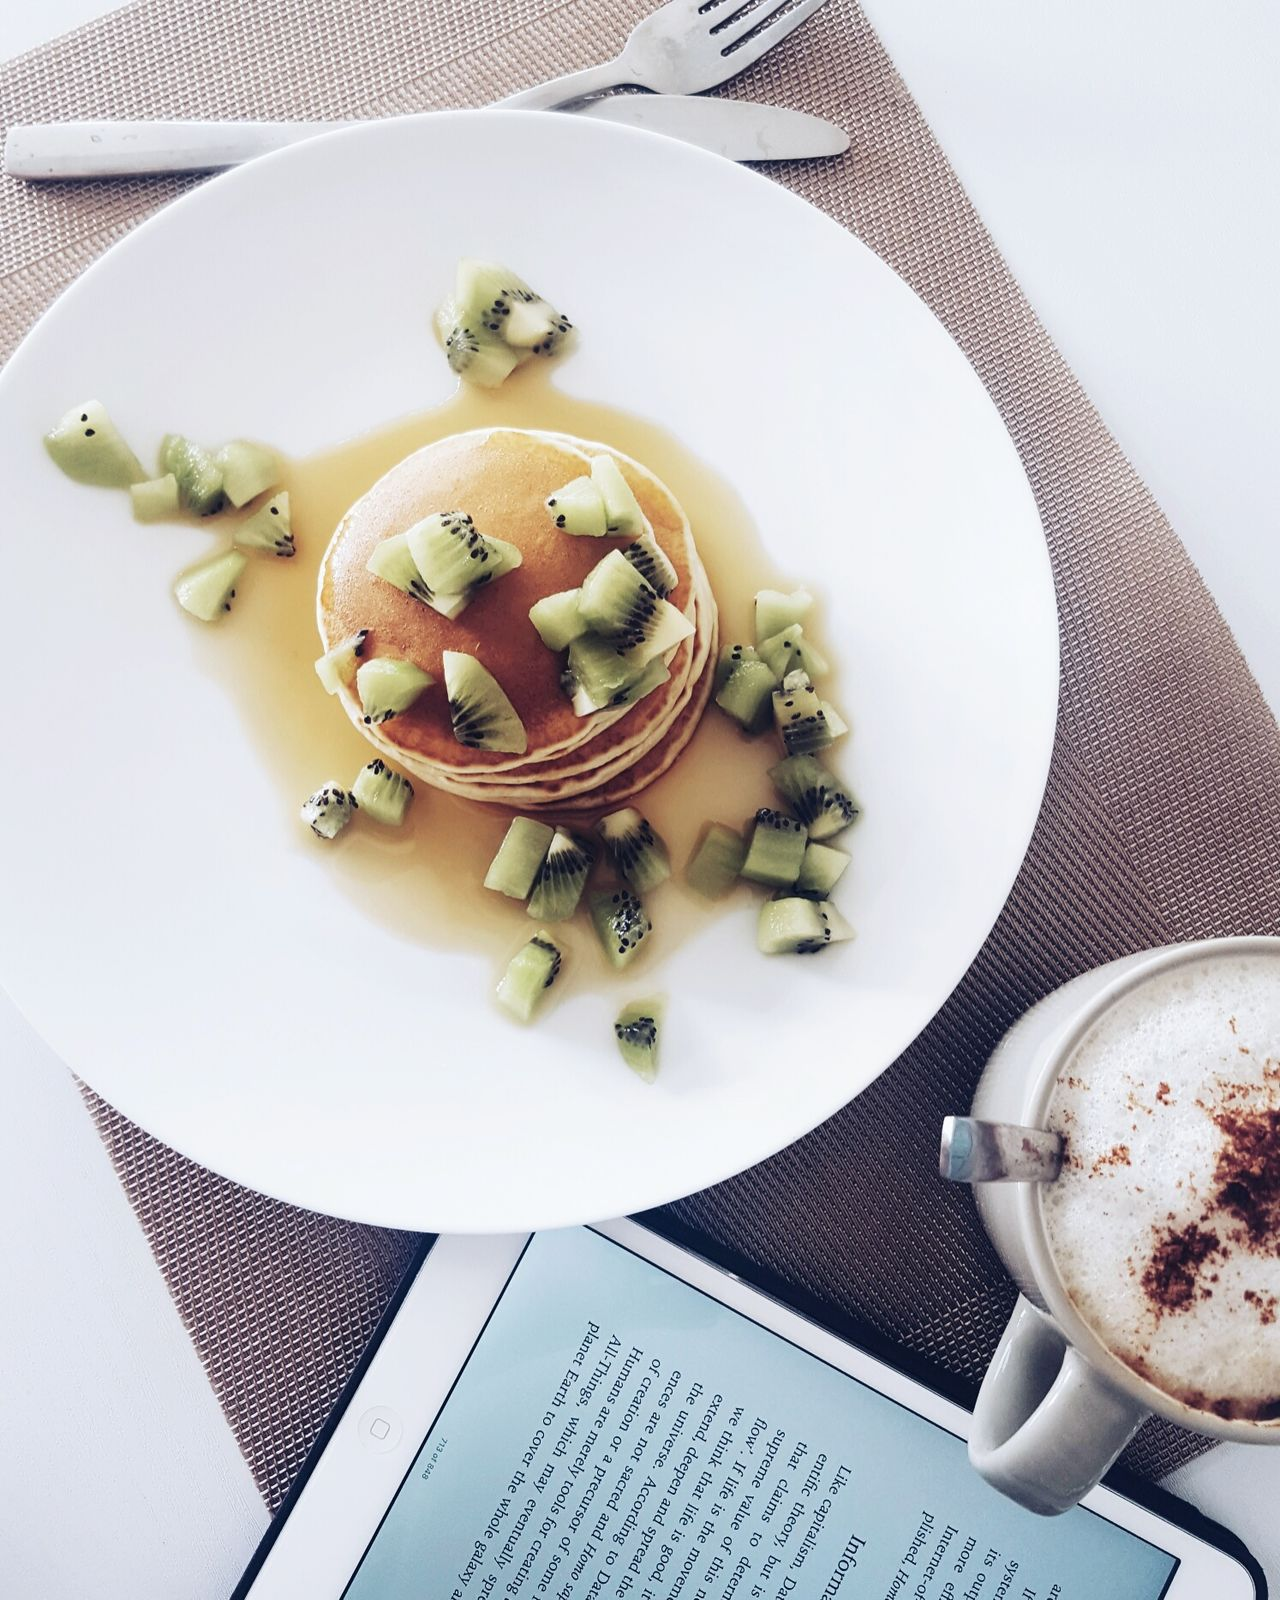 Pancakes Plate High Angle View Archival Indoors  Fork Ready-to-eat Food No People Day Coffee Healthy Lifestyle Healthy Eating Digital Tablet Wireless Technology Kiwifruit